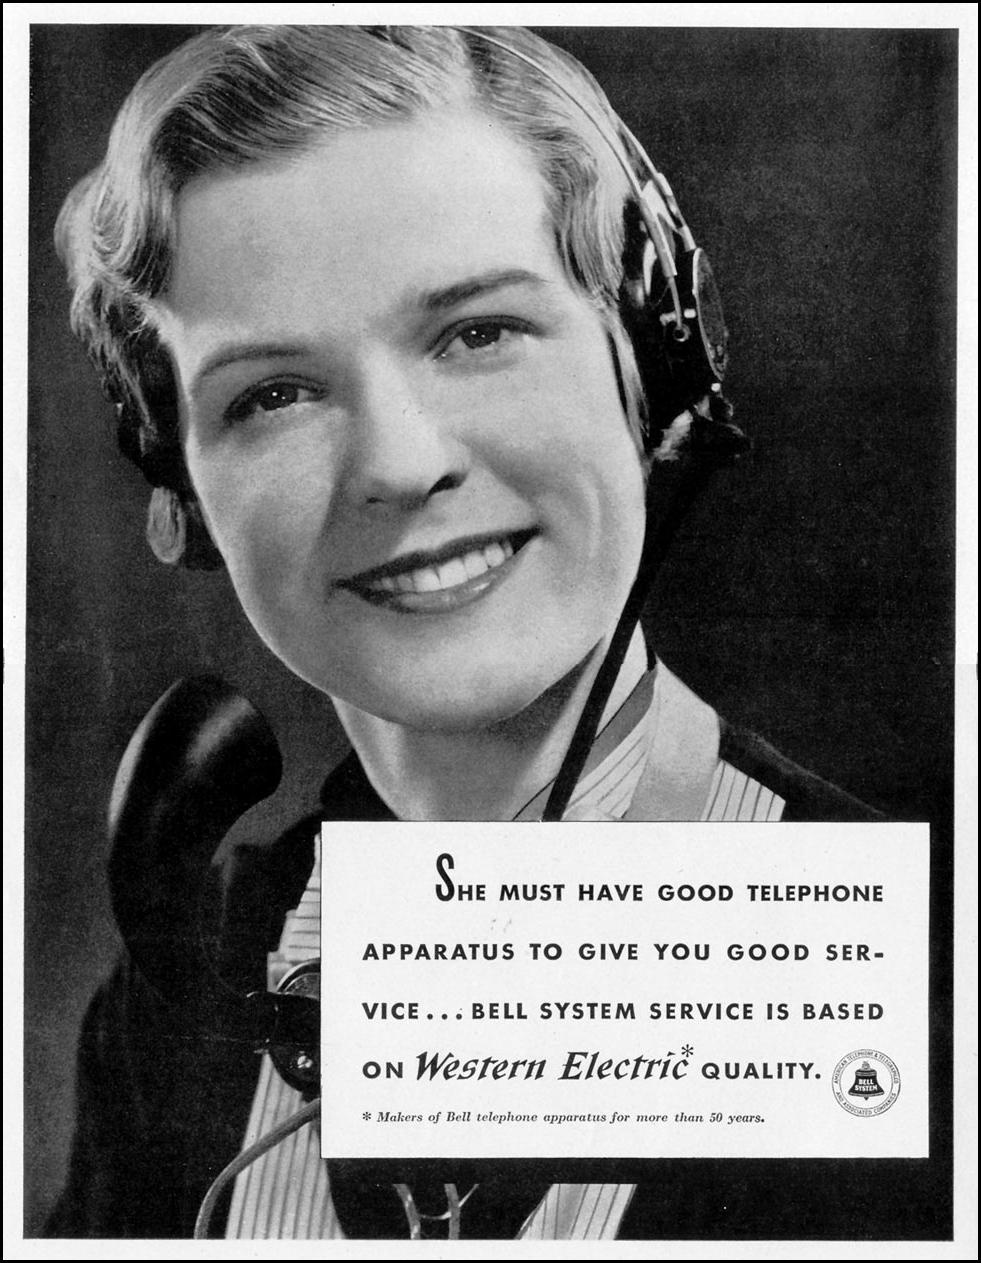 TELEPHONE EQUIPMENT LIFE 07/26/1937 p. 18